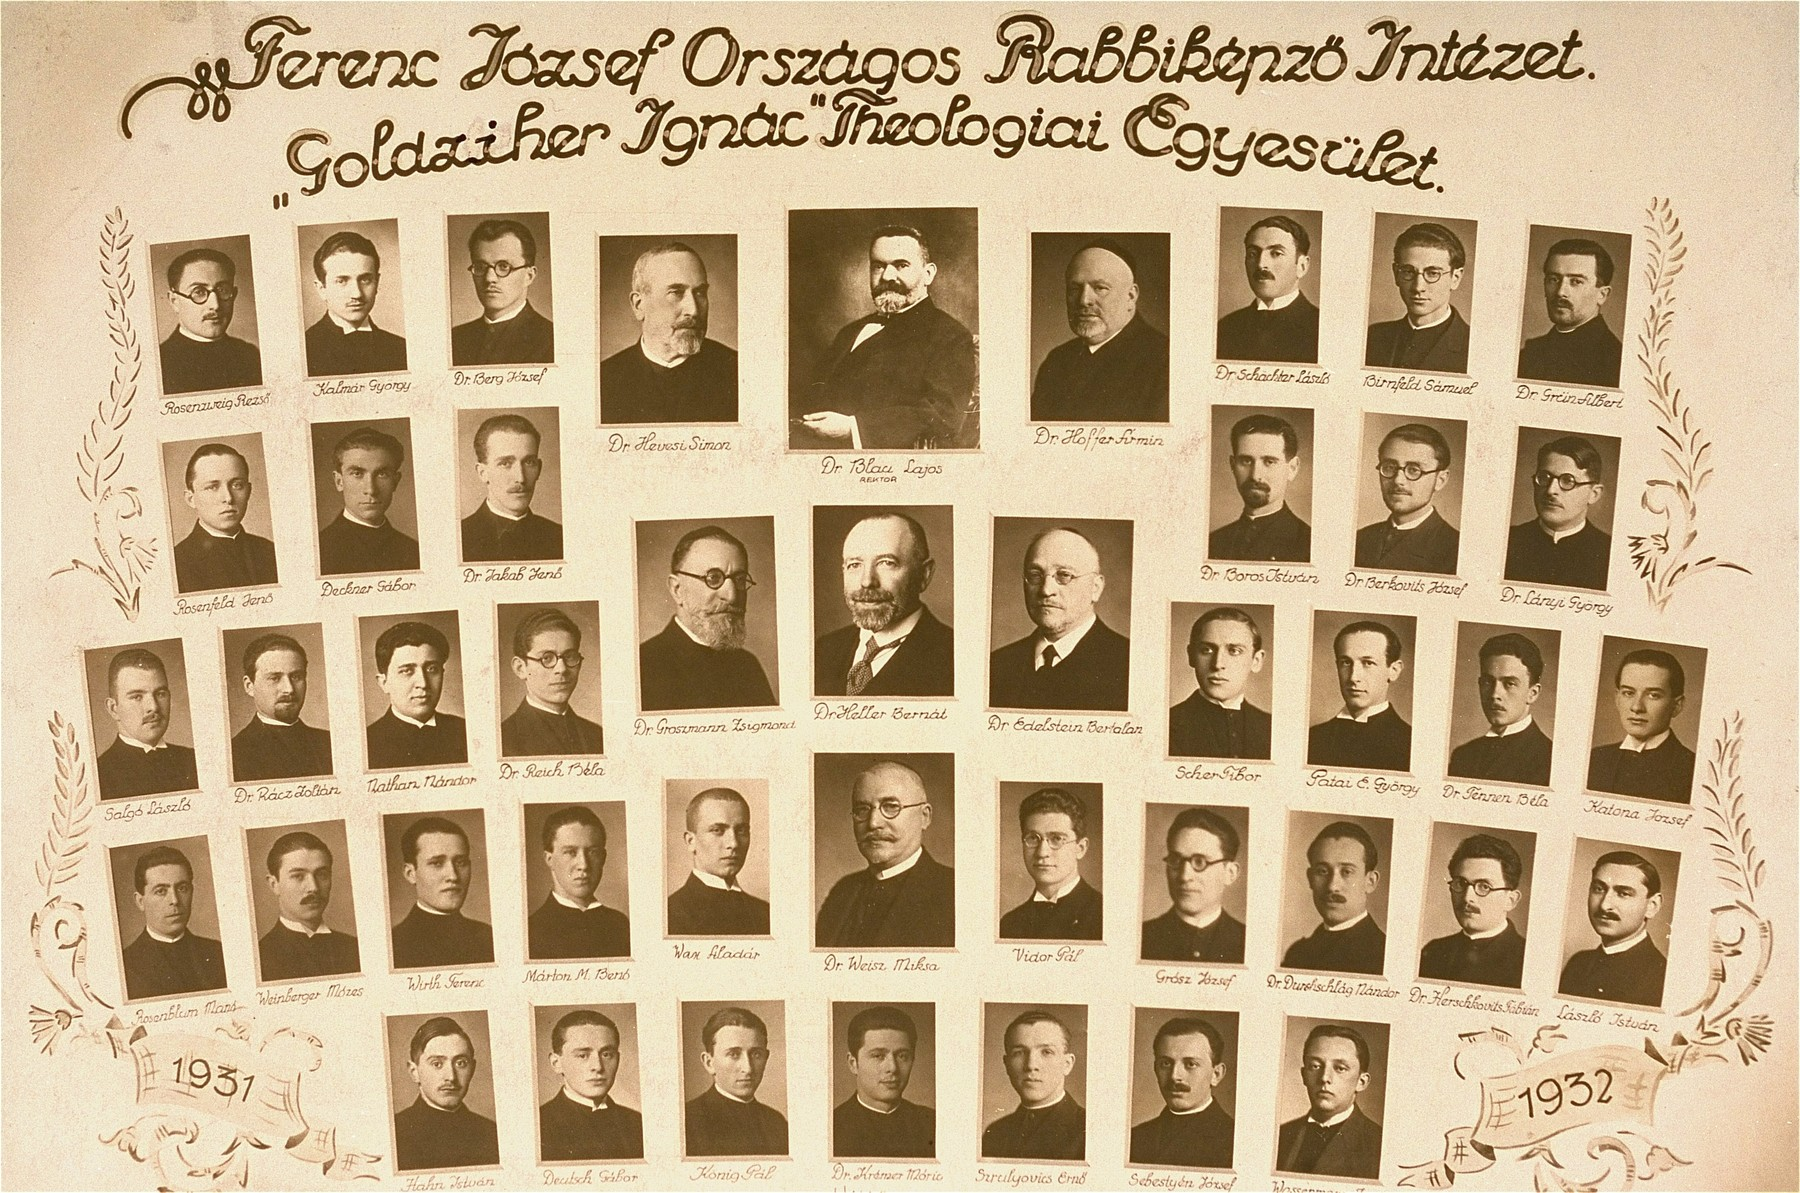 Class photograph of the rabbinical students at the Goldziher Ignac Theologiai Egyesulet (rabbinical seminary), 1931-32.  Included are Jozsef Katona and Raphael Patai.